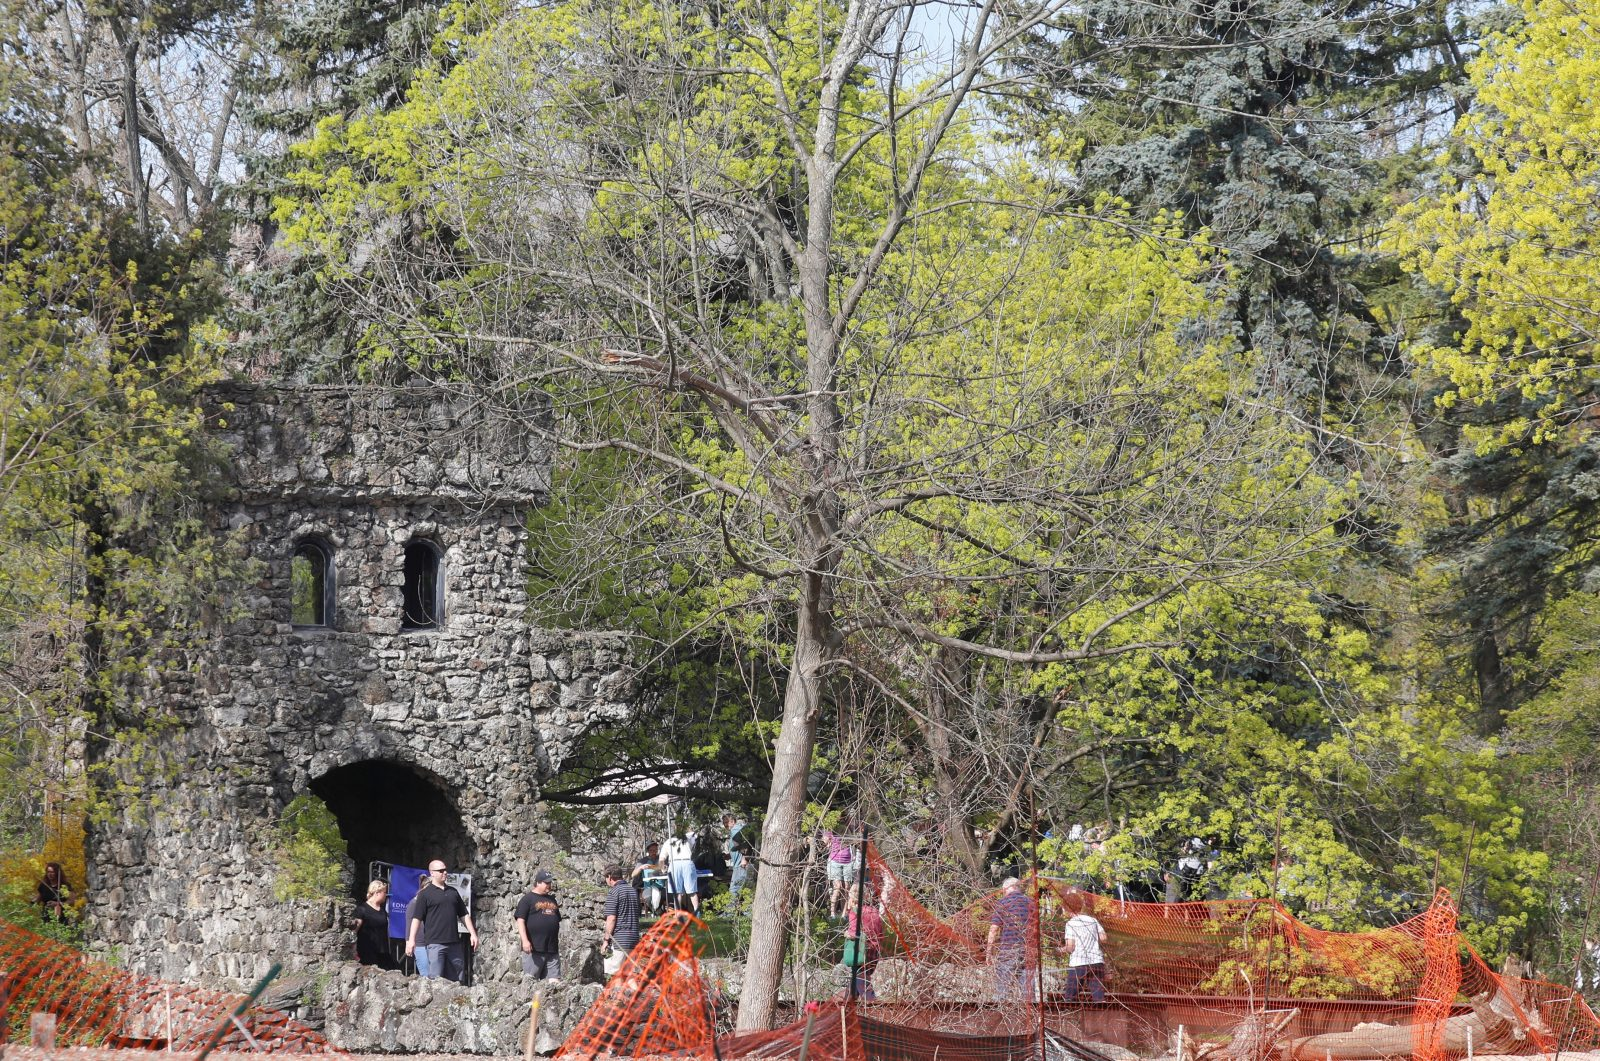 People attending the first day of an estate sale travel in and out of the walkway and gate to the castle on Oakgrove Drive in Williamsville. (John Hickey/News file photo)